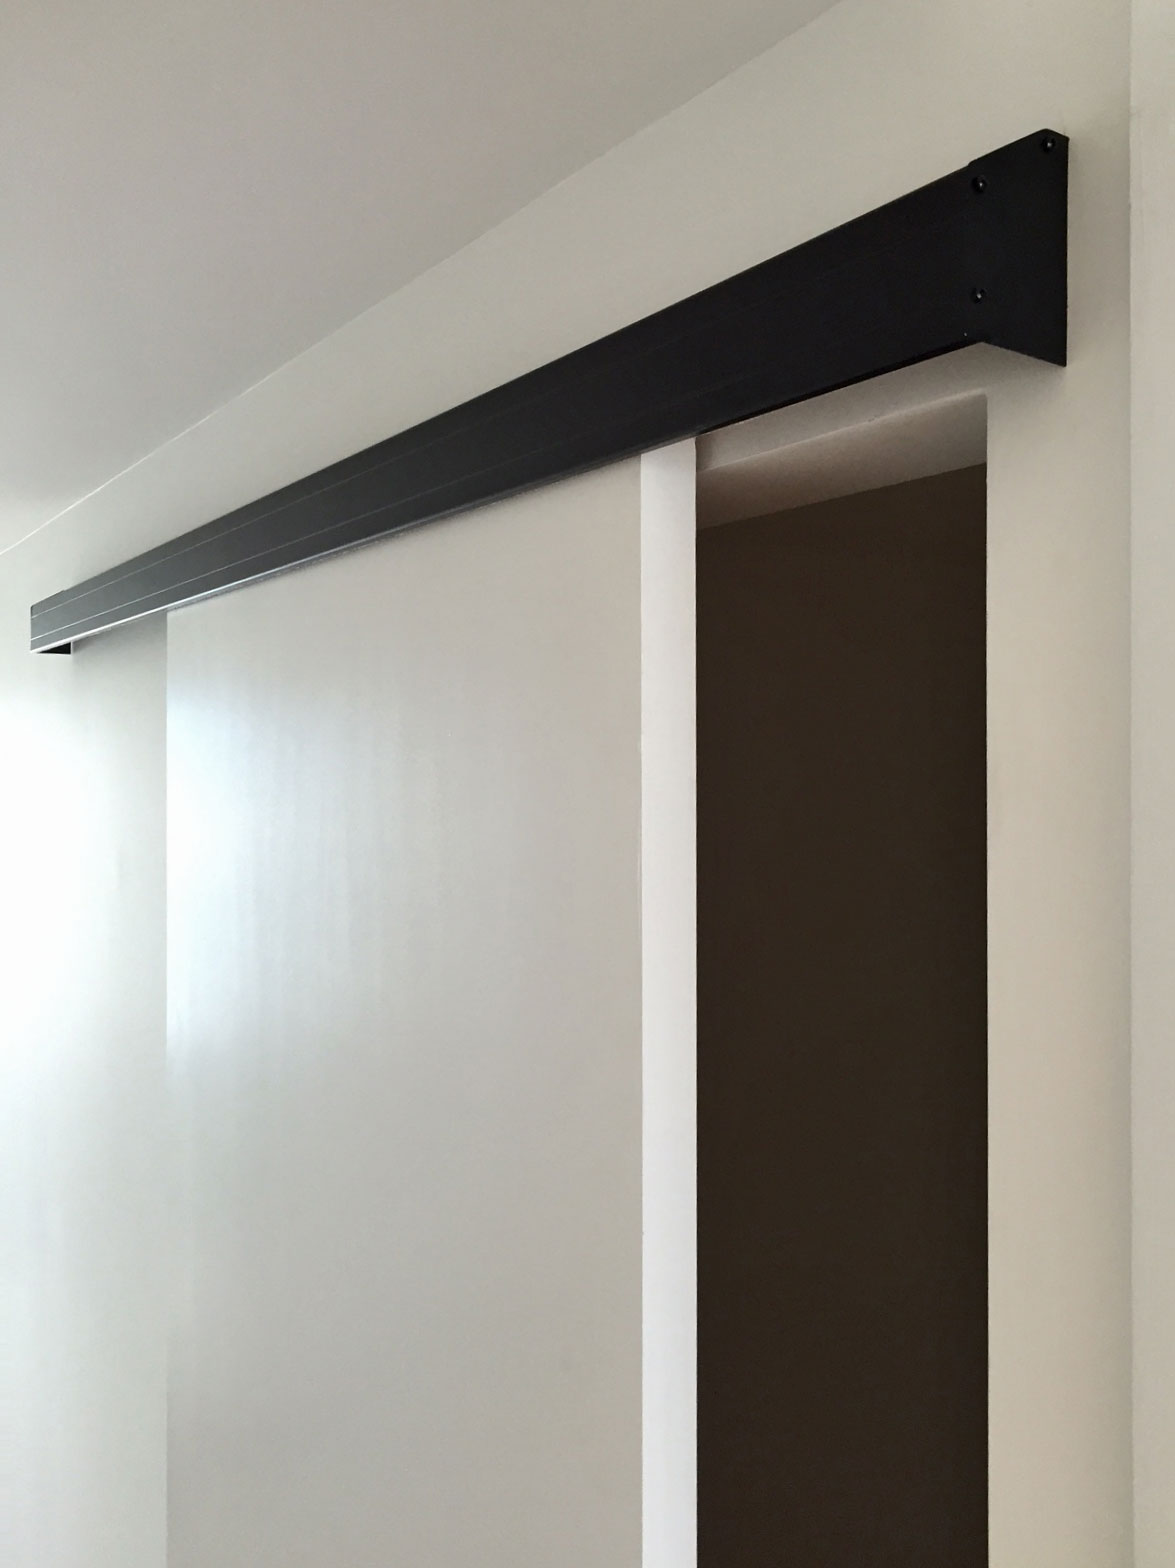 Wall mount track powder coated